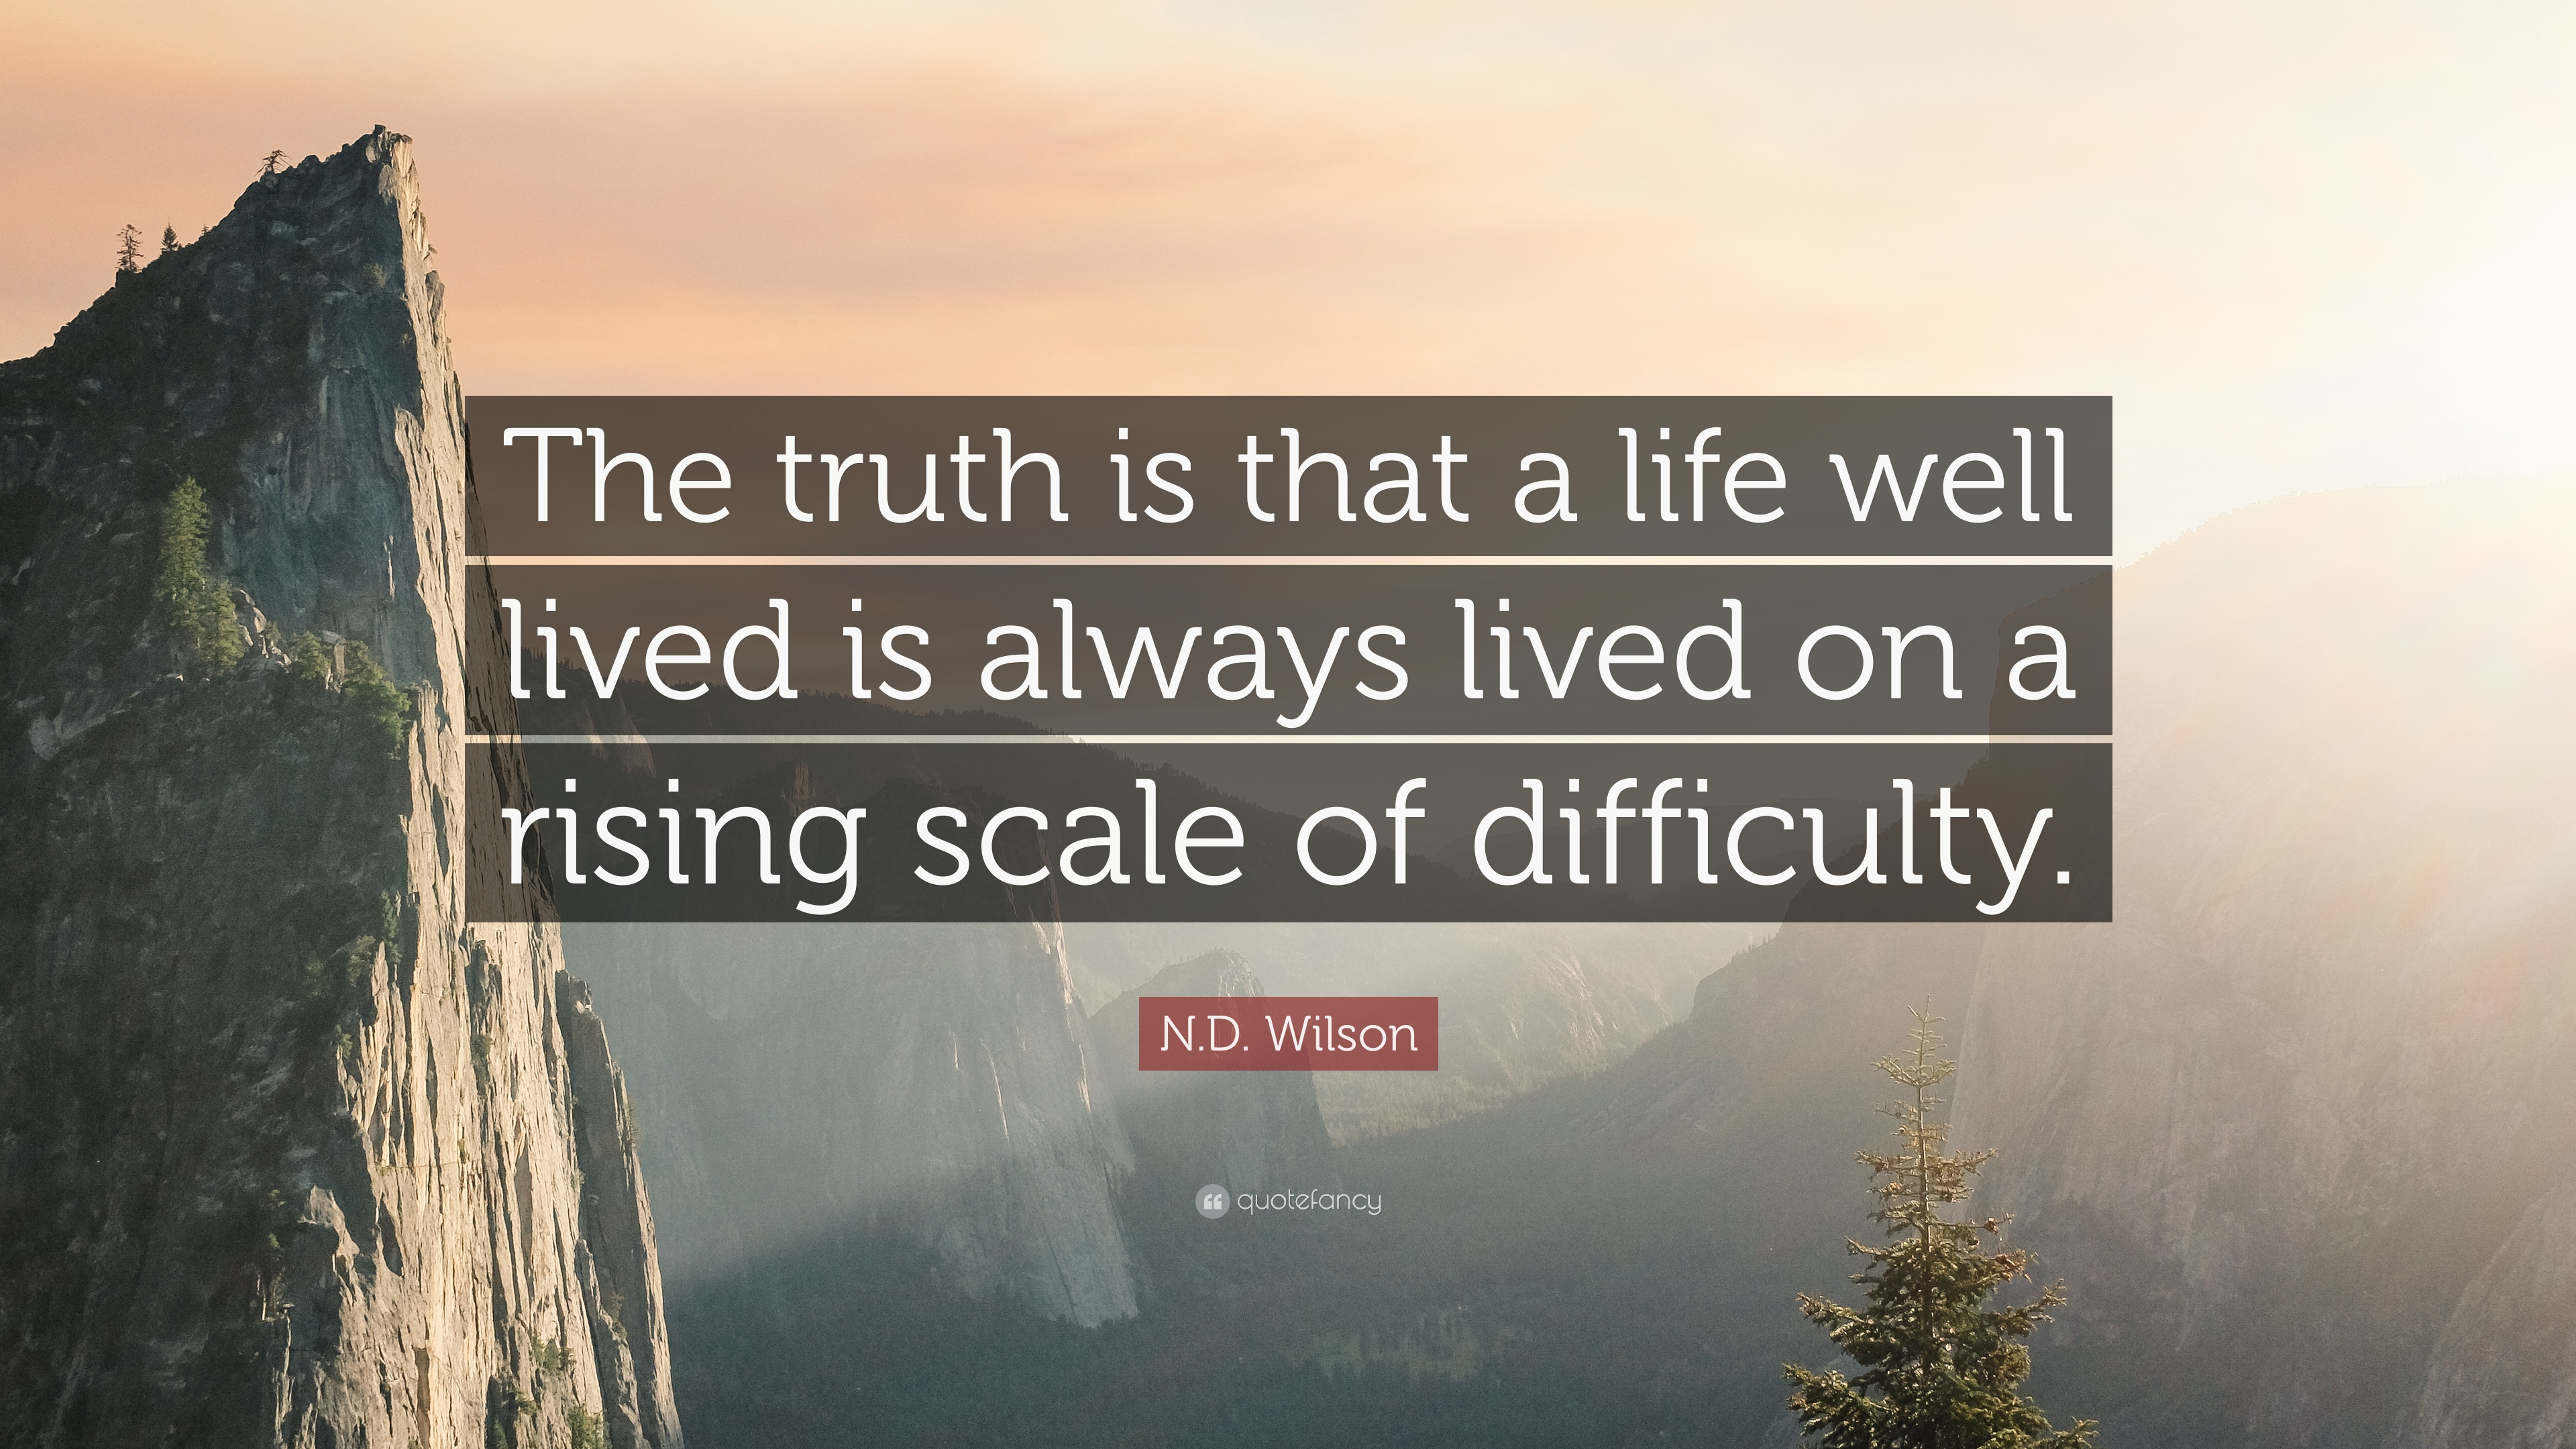 N.D. Wilson Quote: U201cThe Truth Is That A Life Well Lived Is Always Lived